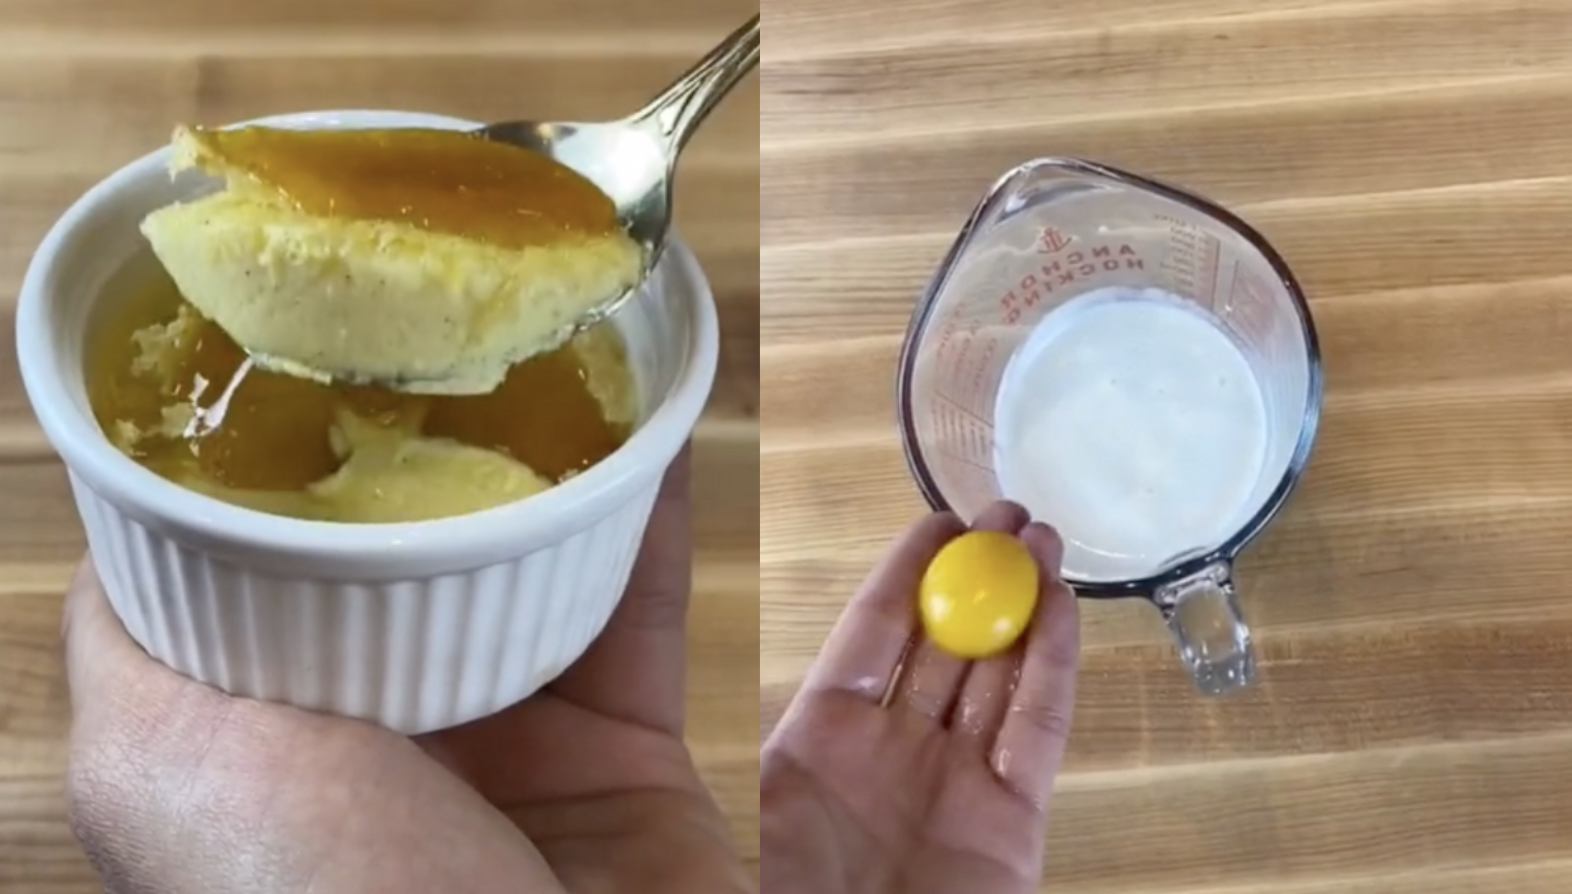 This Tiktok Hack Makes Creme Brulee So Easily